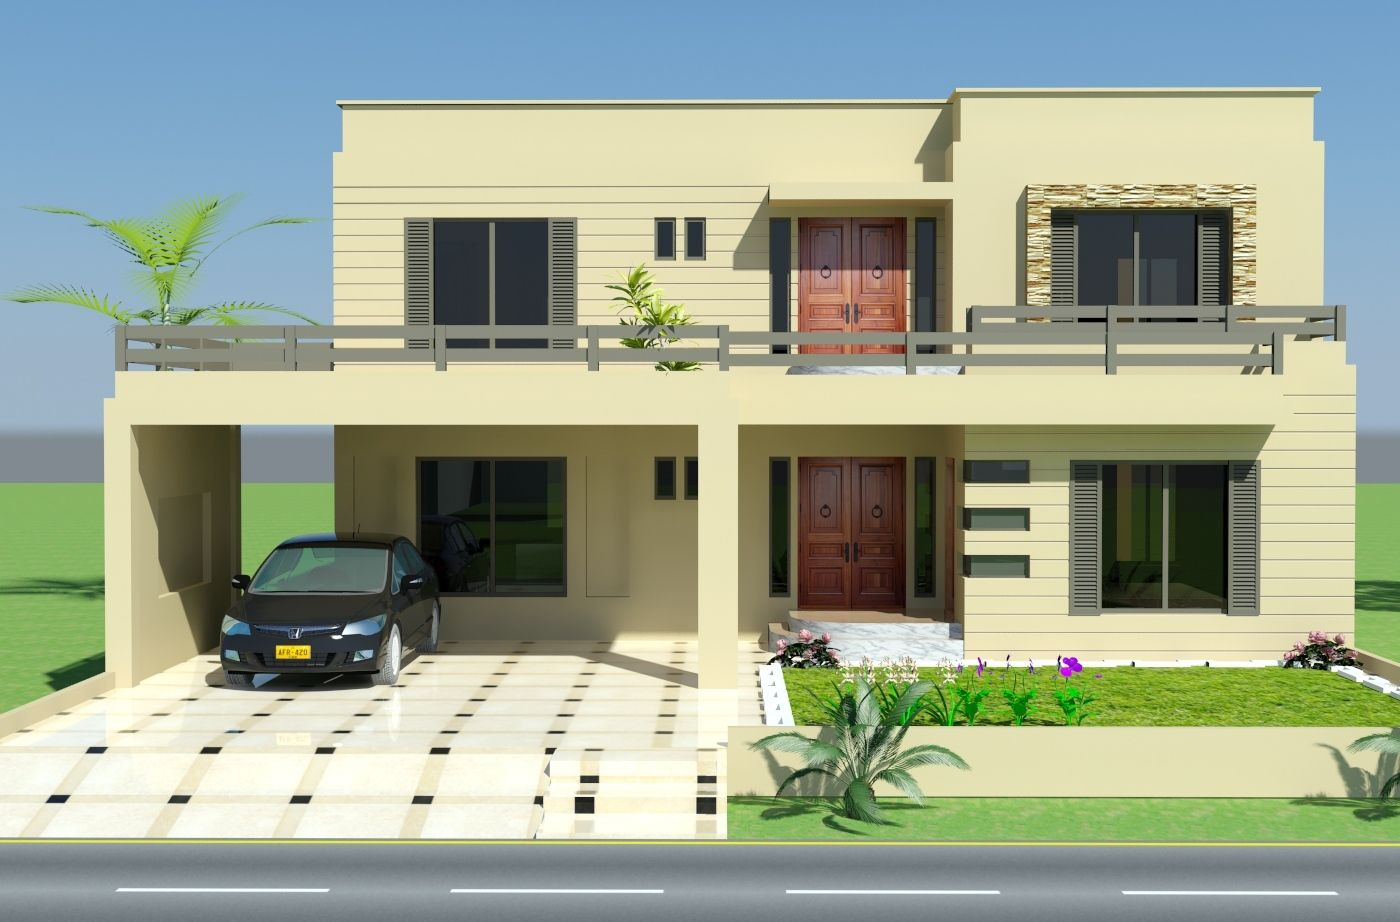 Exterior house design front elevation mi futura casa for Modern house front design